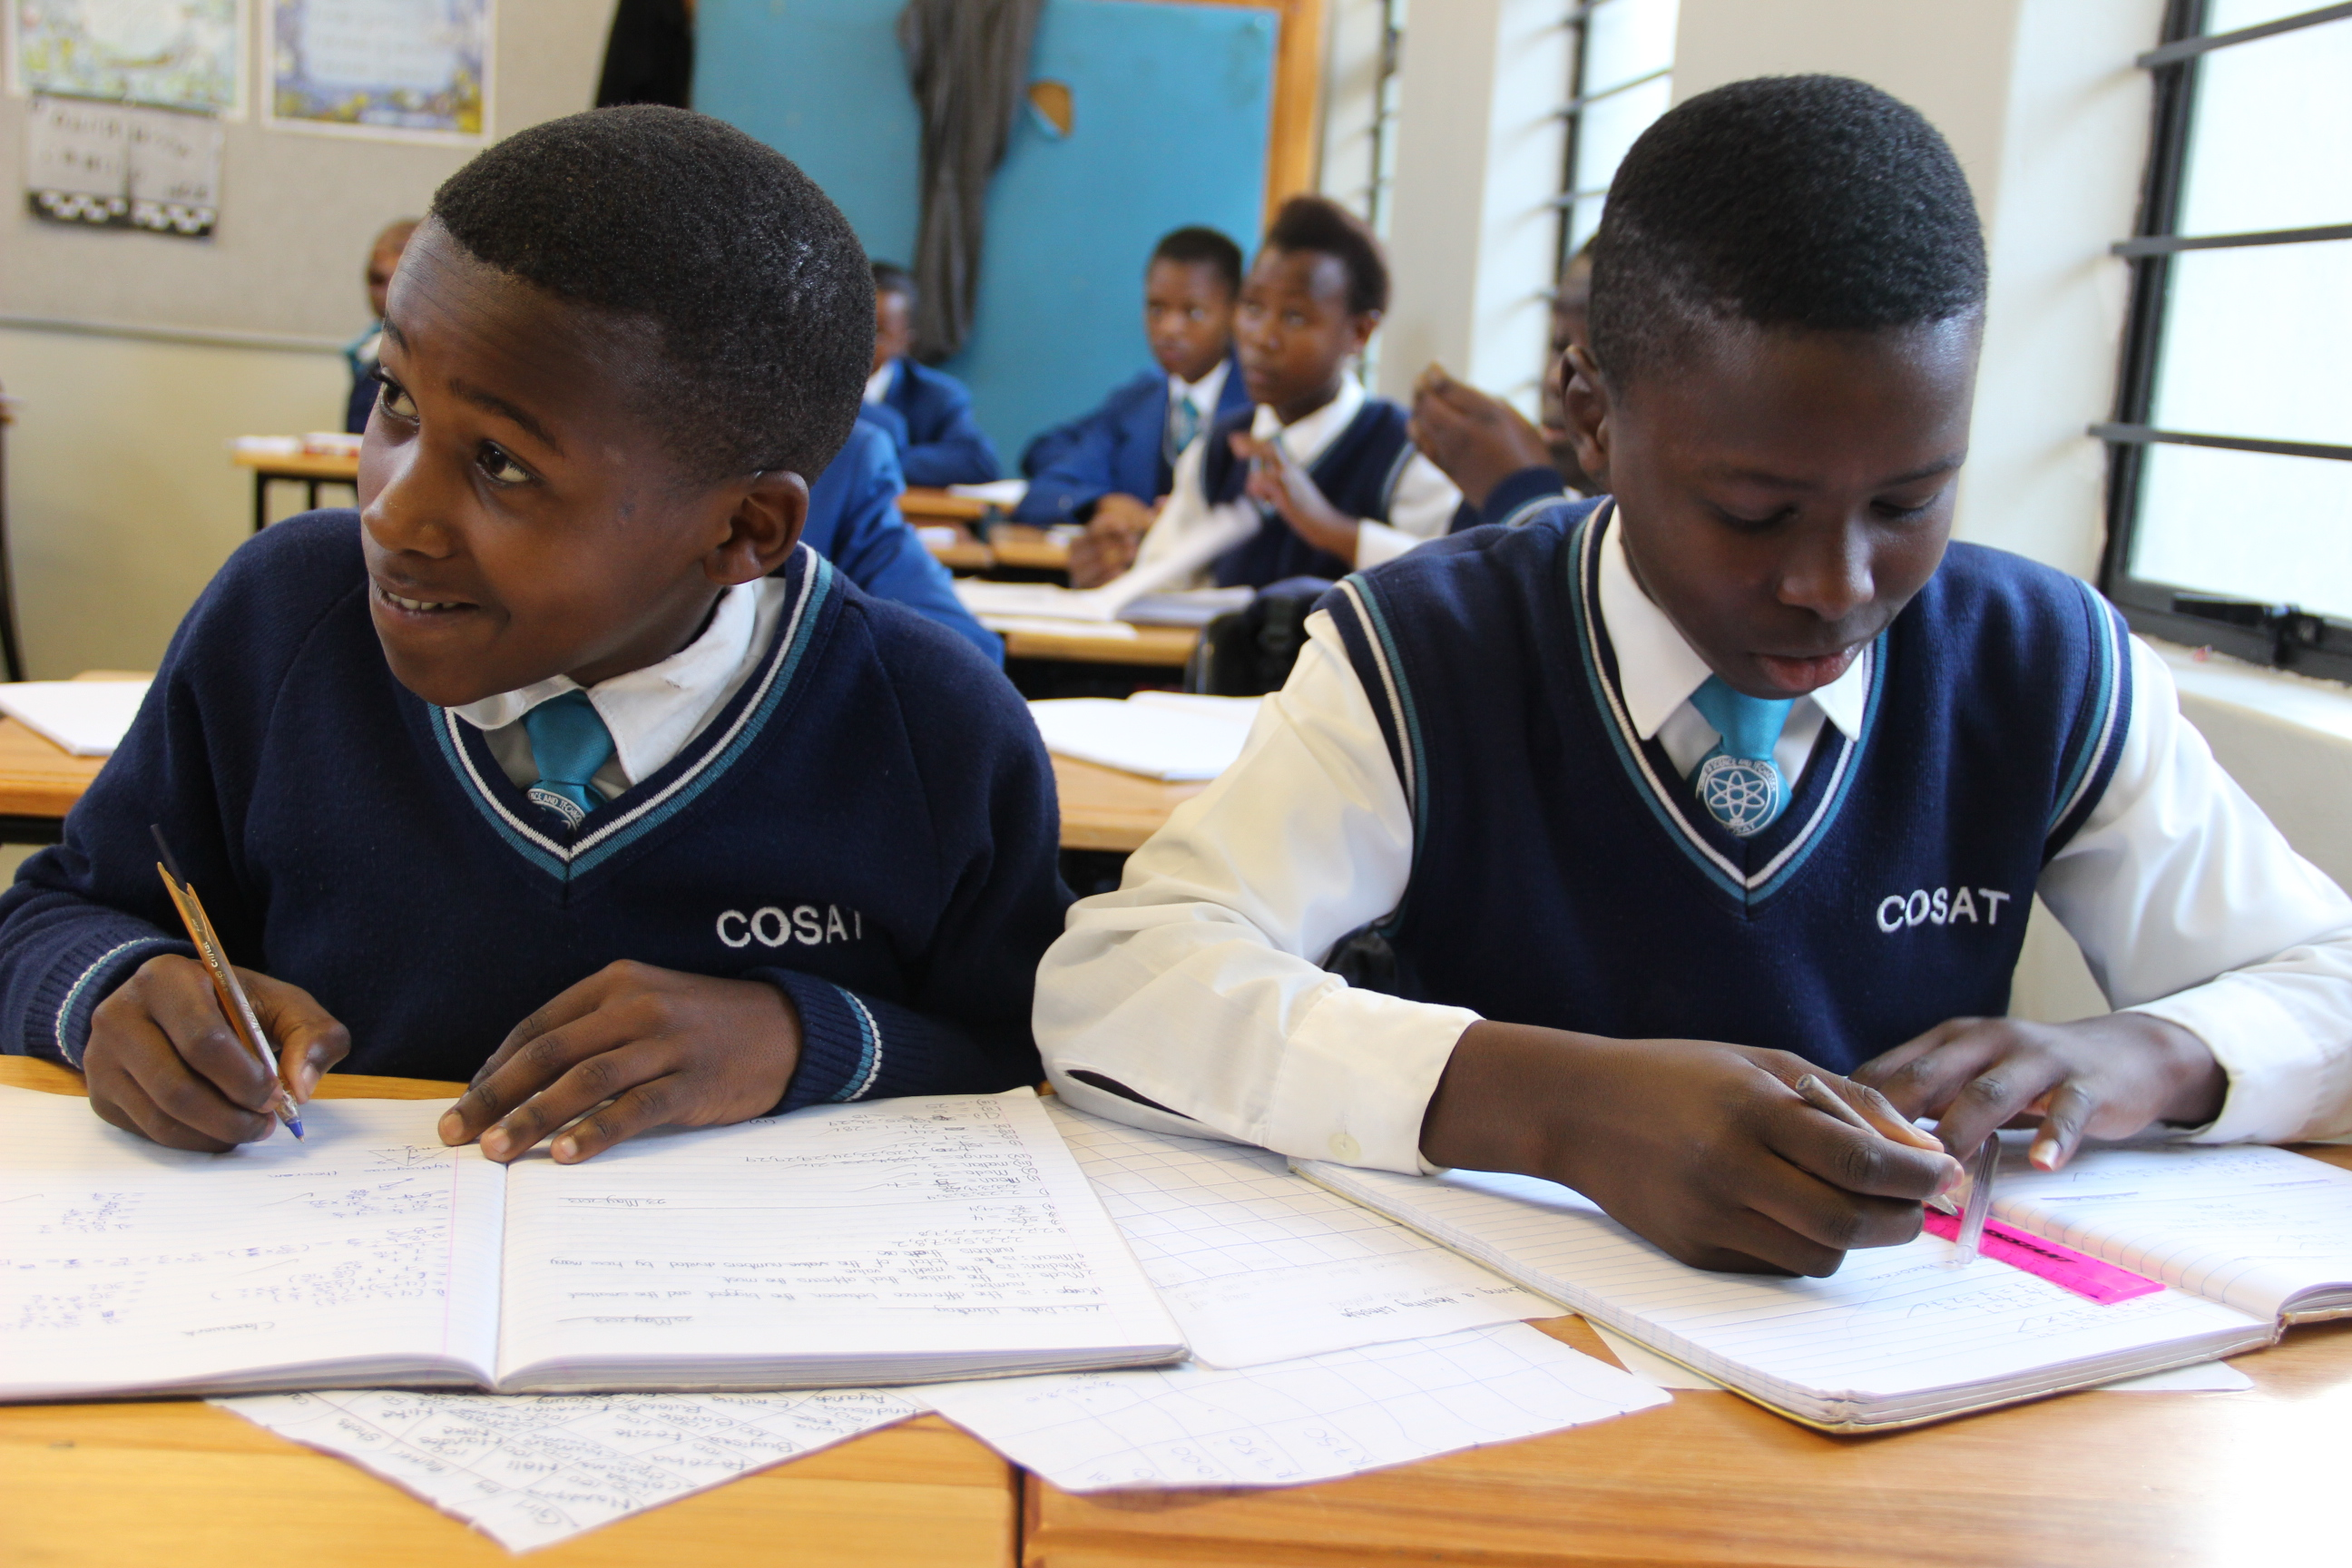 School Year Blog Are South African Schools Just Pushing